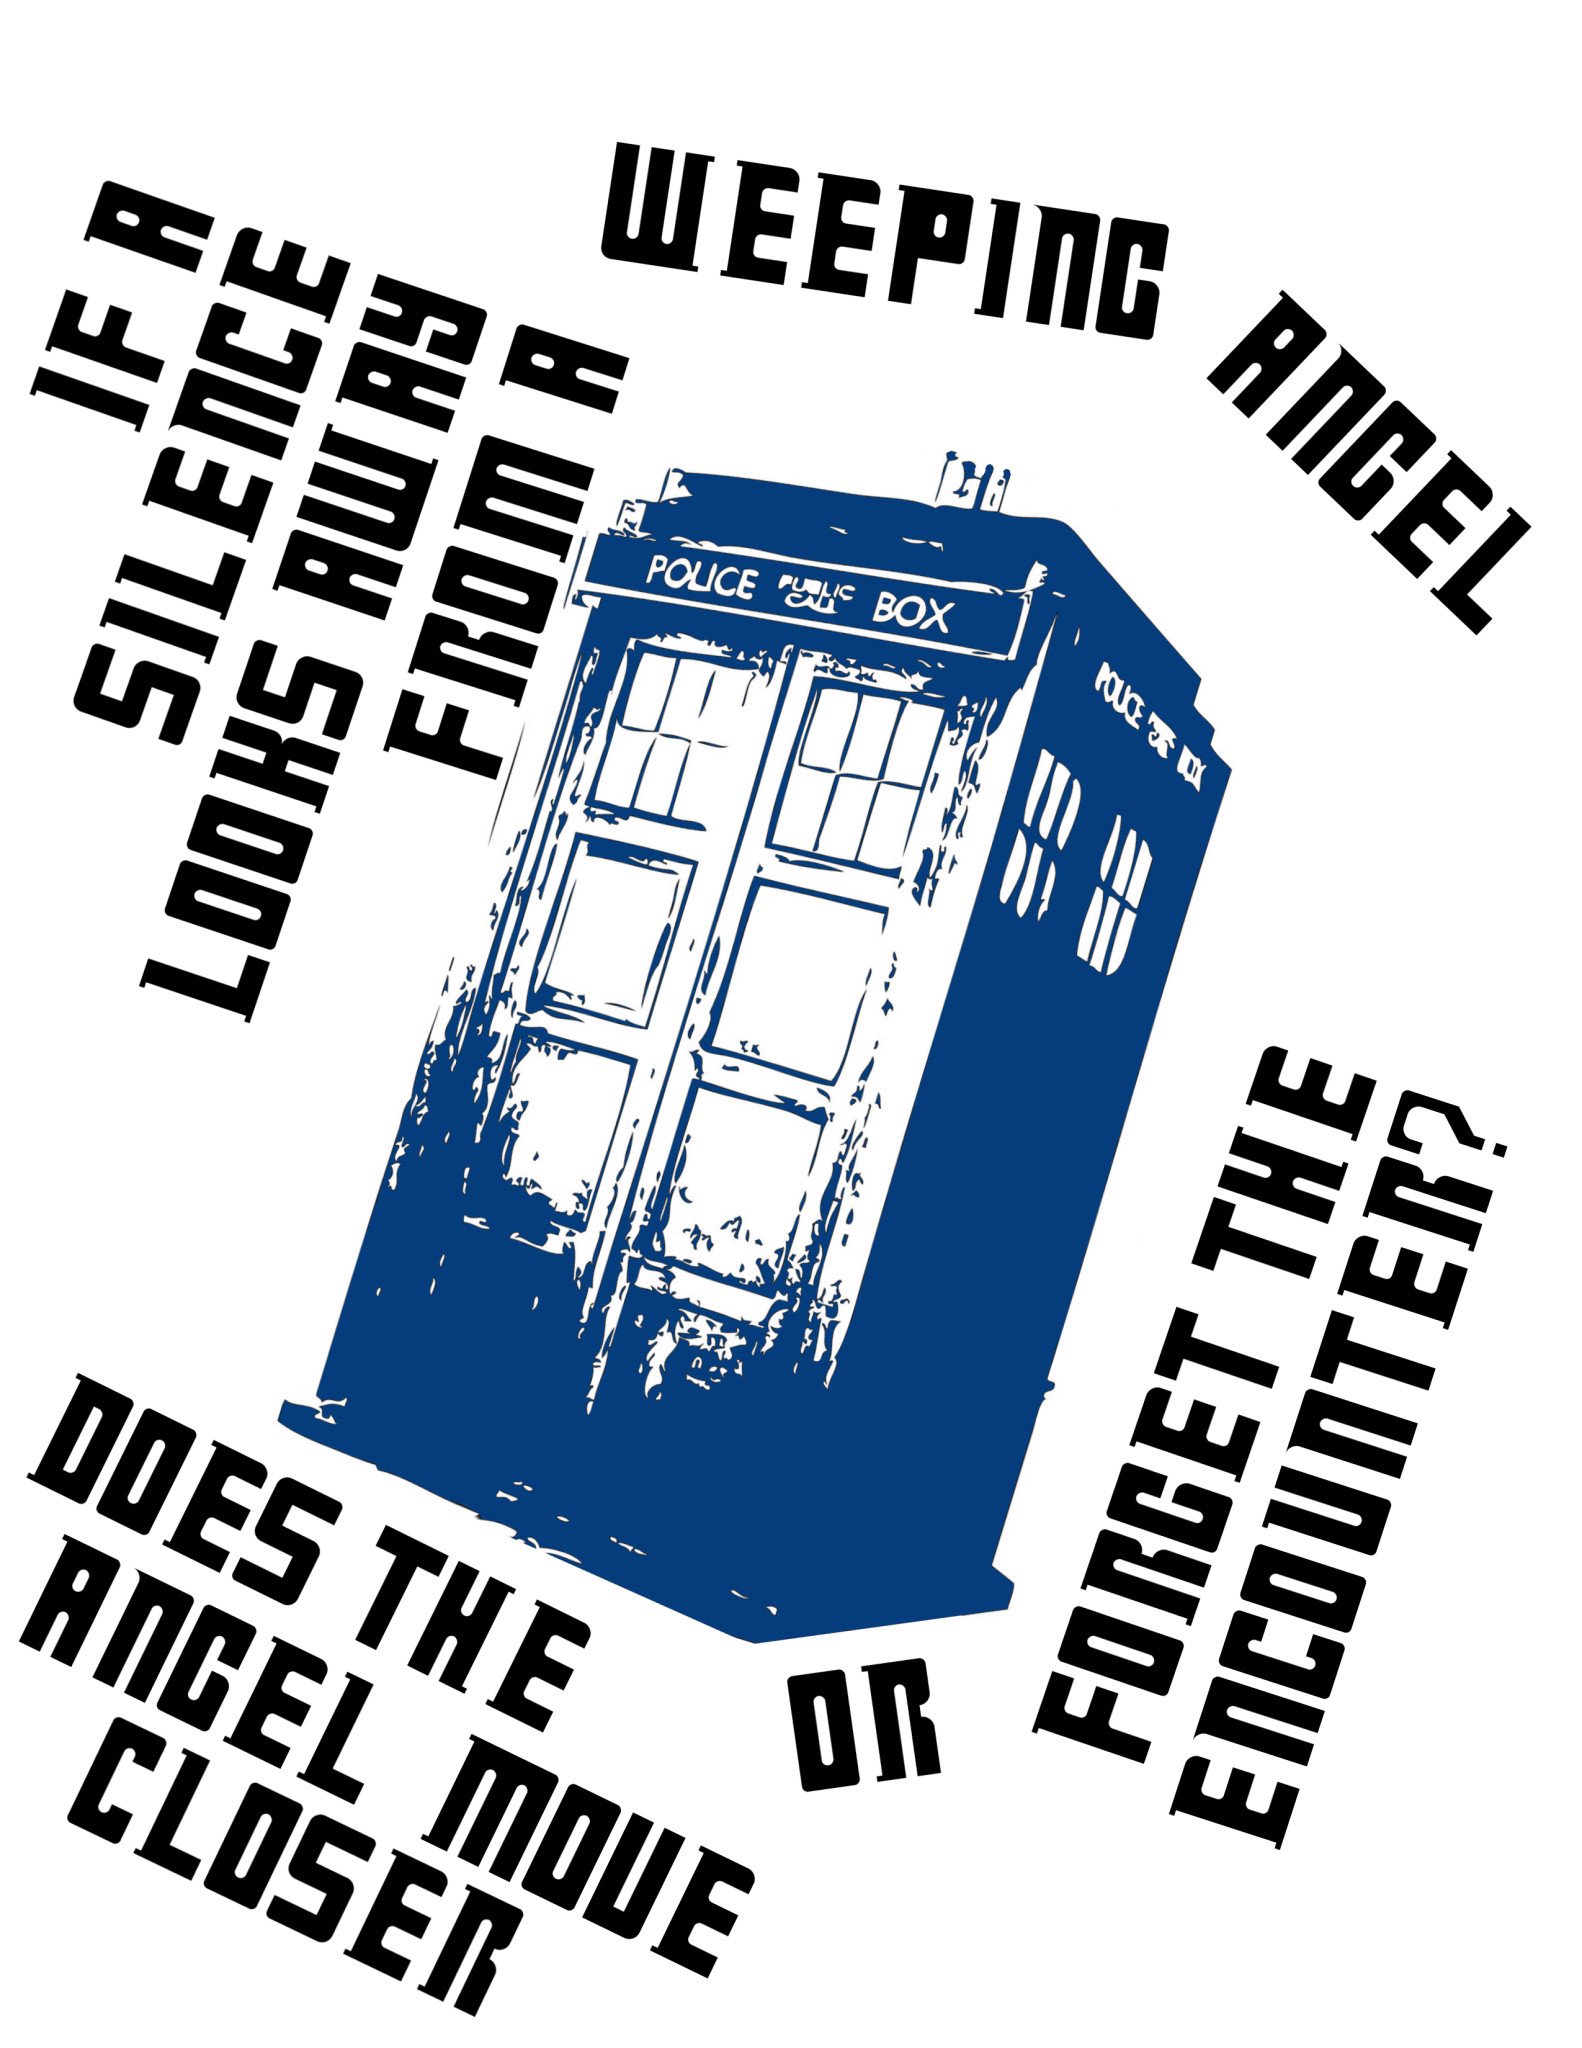 Silence vs. Weeping Angel question - Dr. Who inspired design